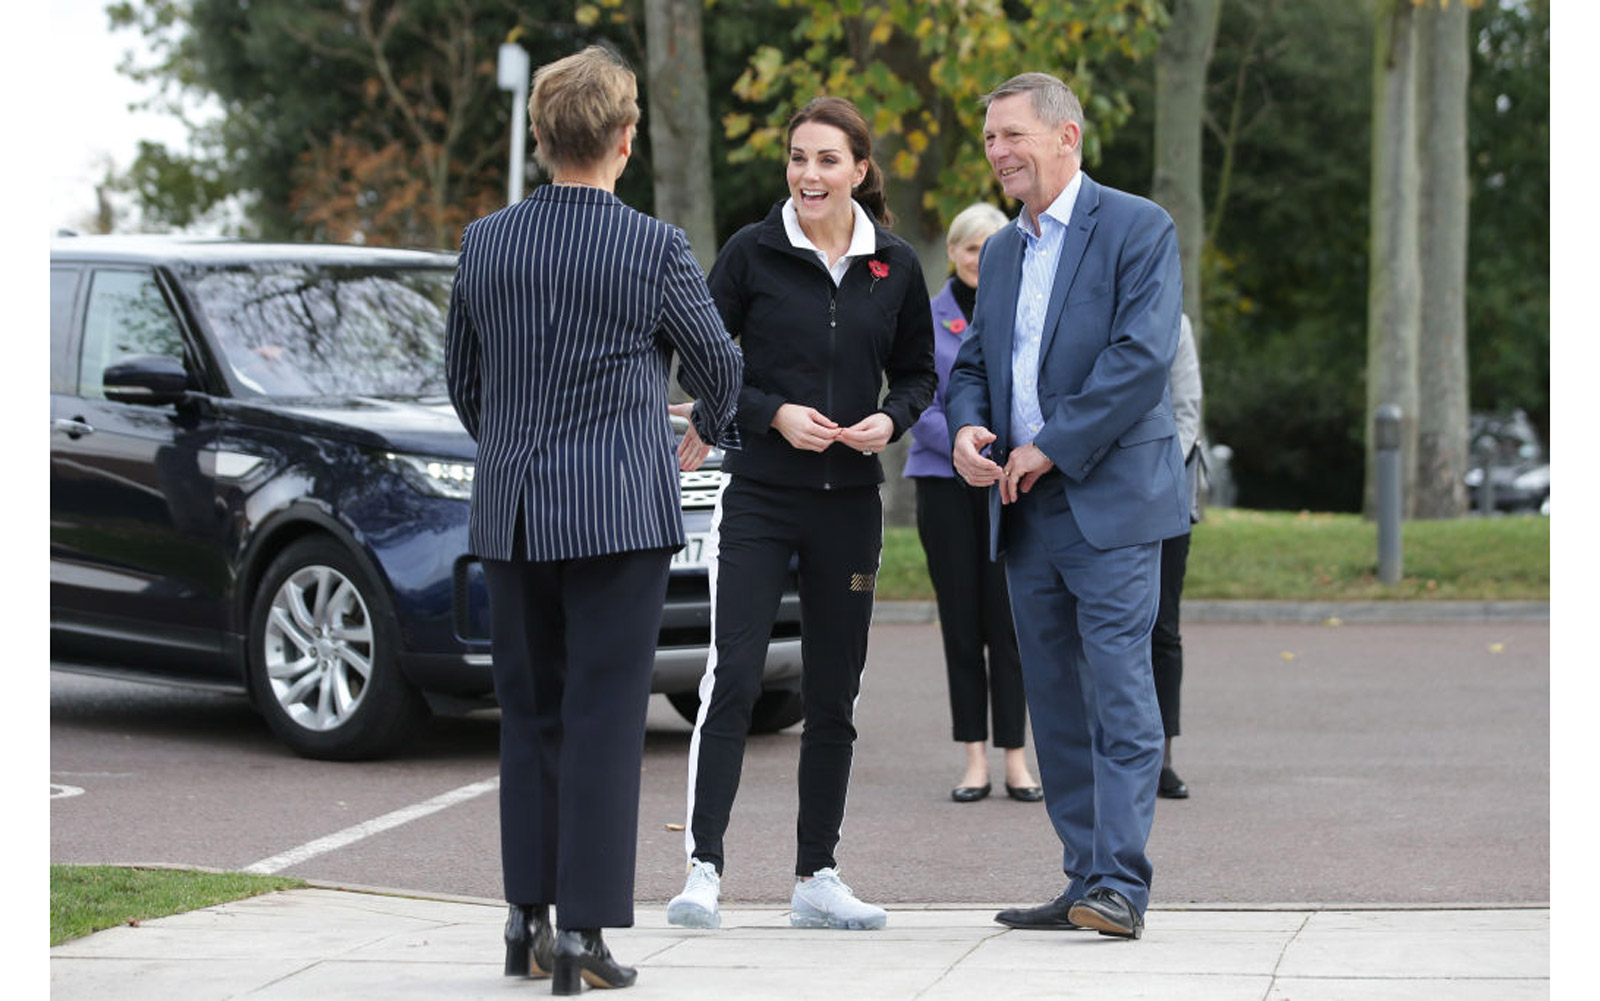 The Duchess Of Cambridge Visits The Lawn Tennis Association